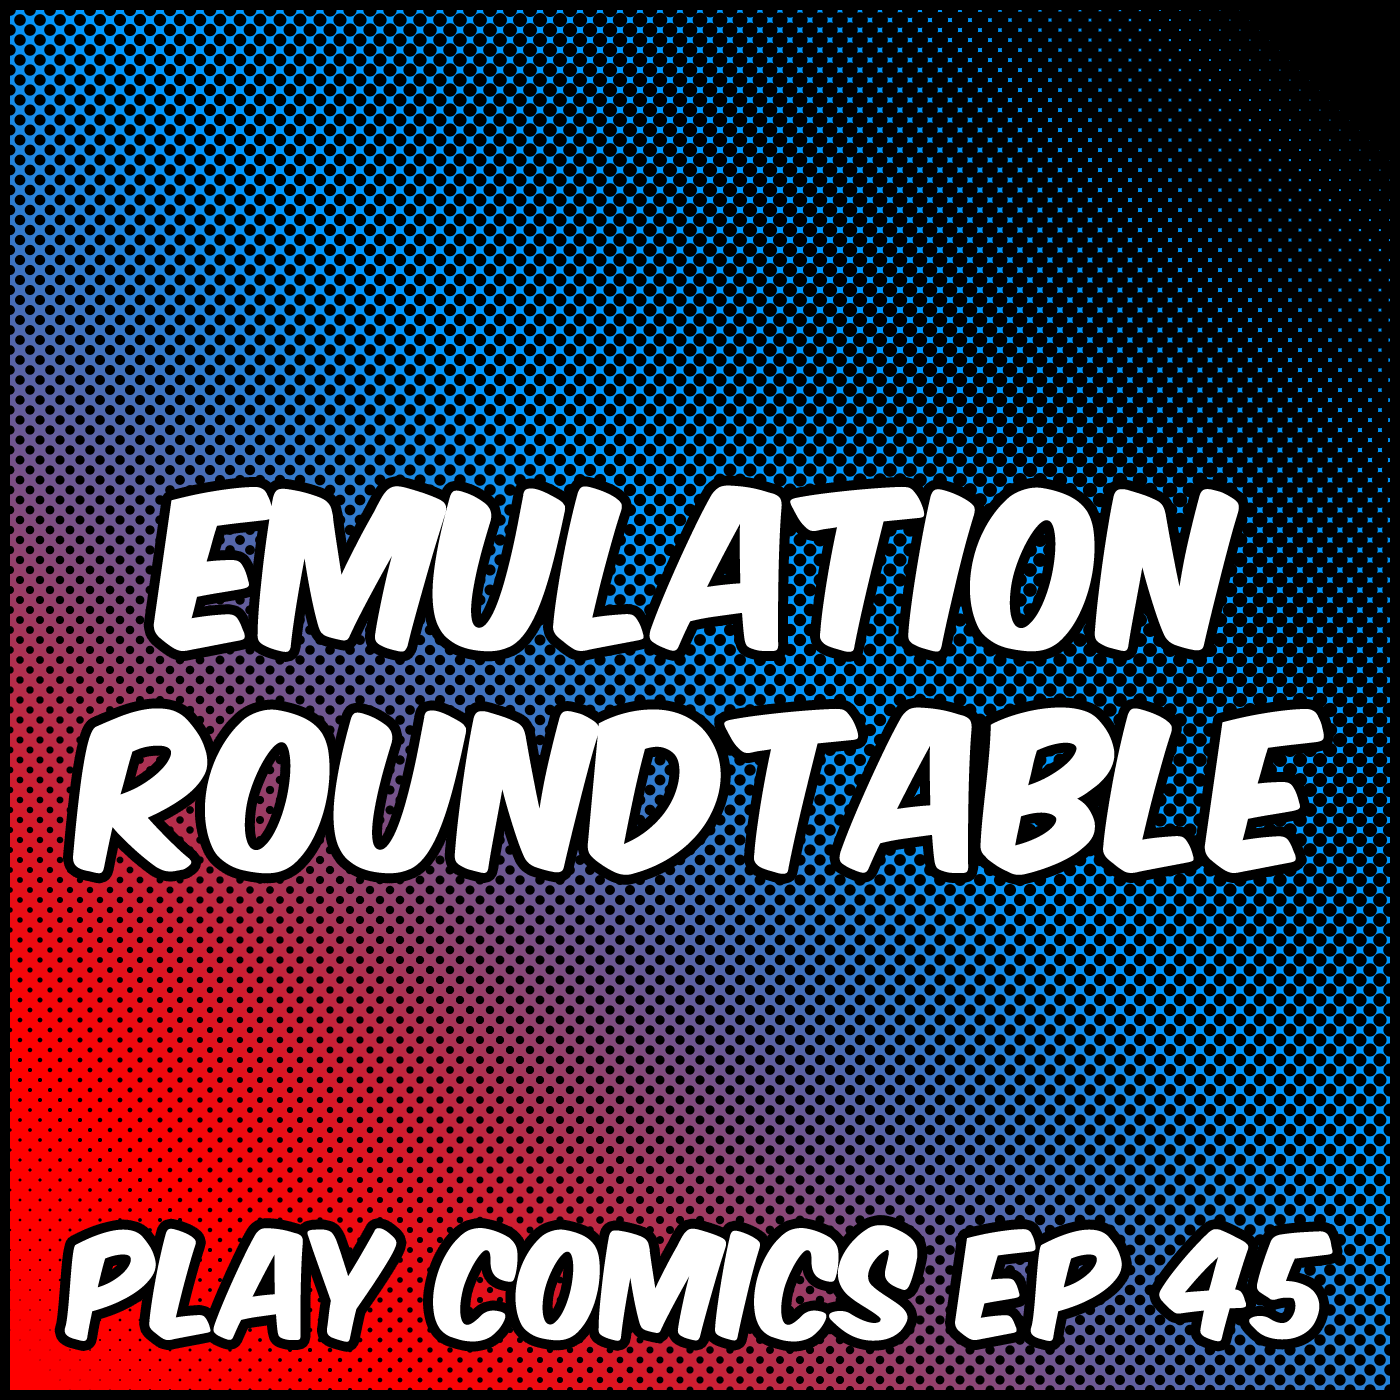 Emulation Roundtable with Derek Graziano (The Sometimes Geek/Rolling Misadventures), Karrington Martin (Real Dudes Podcast), and Justin Reed (Game n Watch)